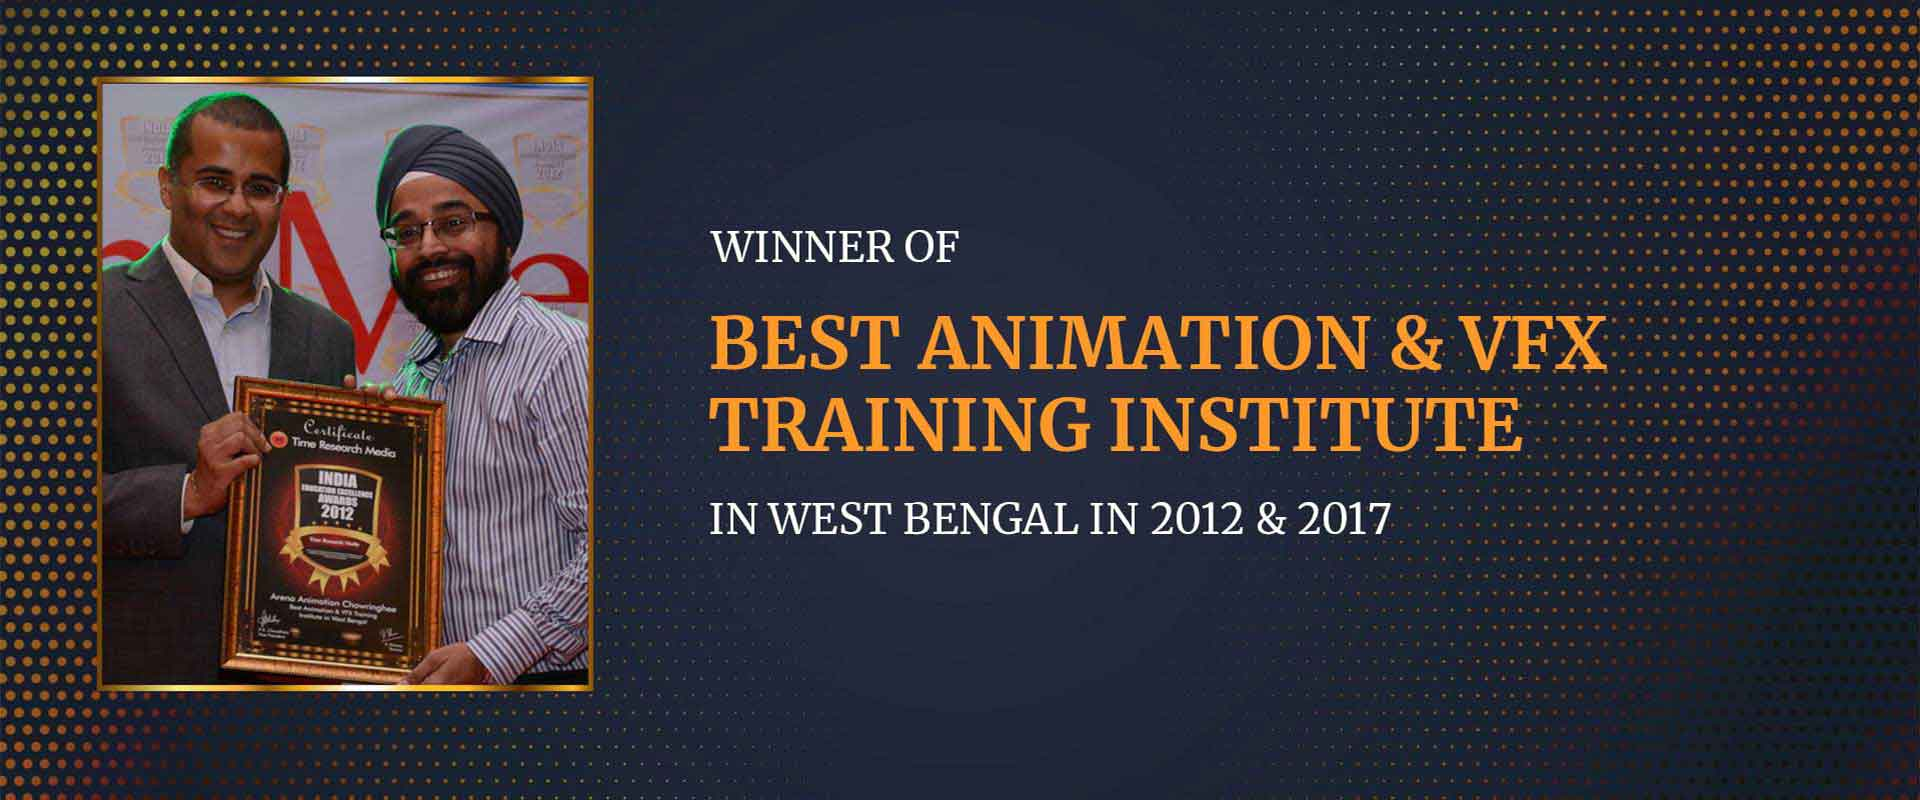 Awarded as the best animation and VFX training institute